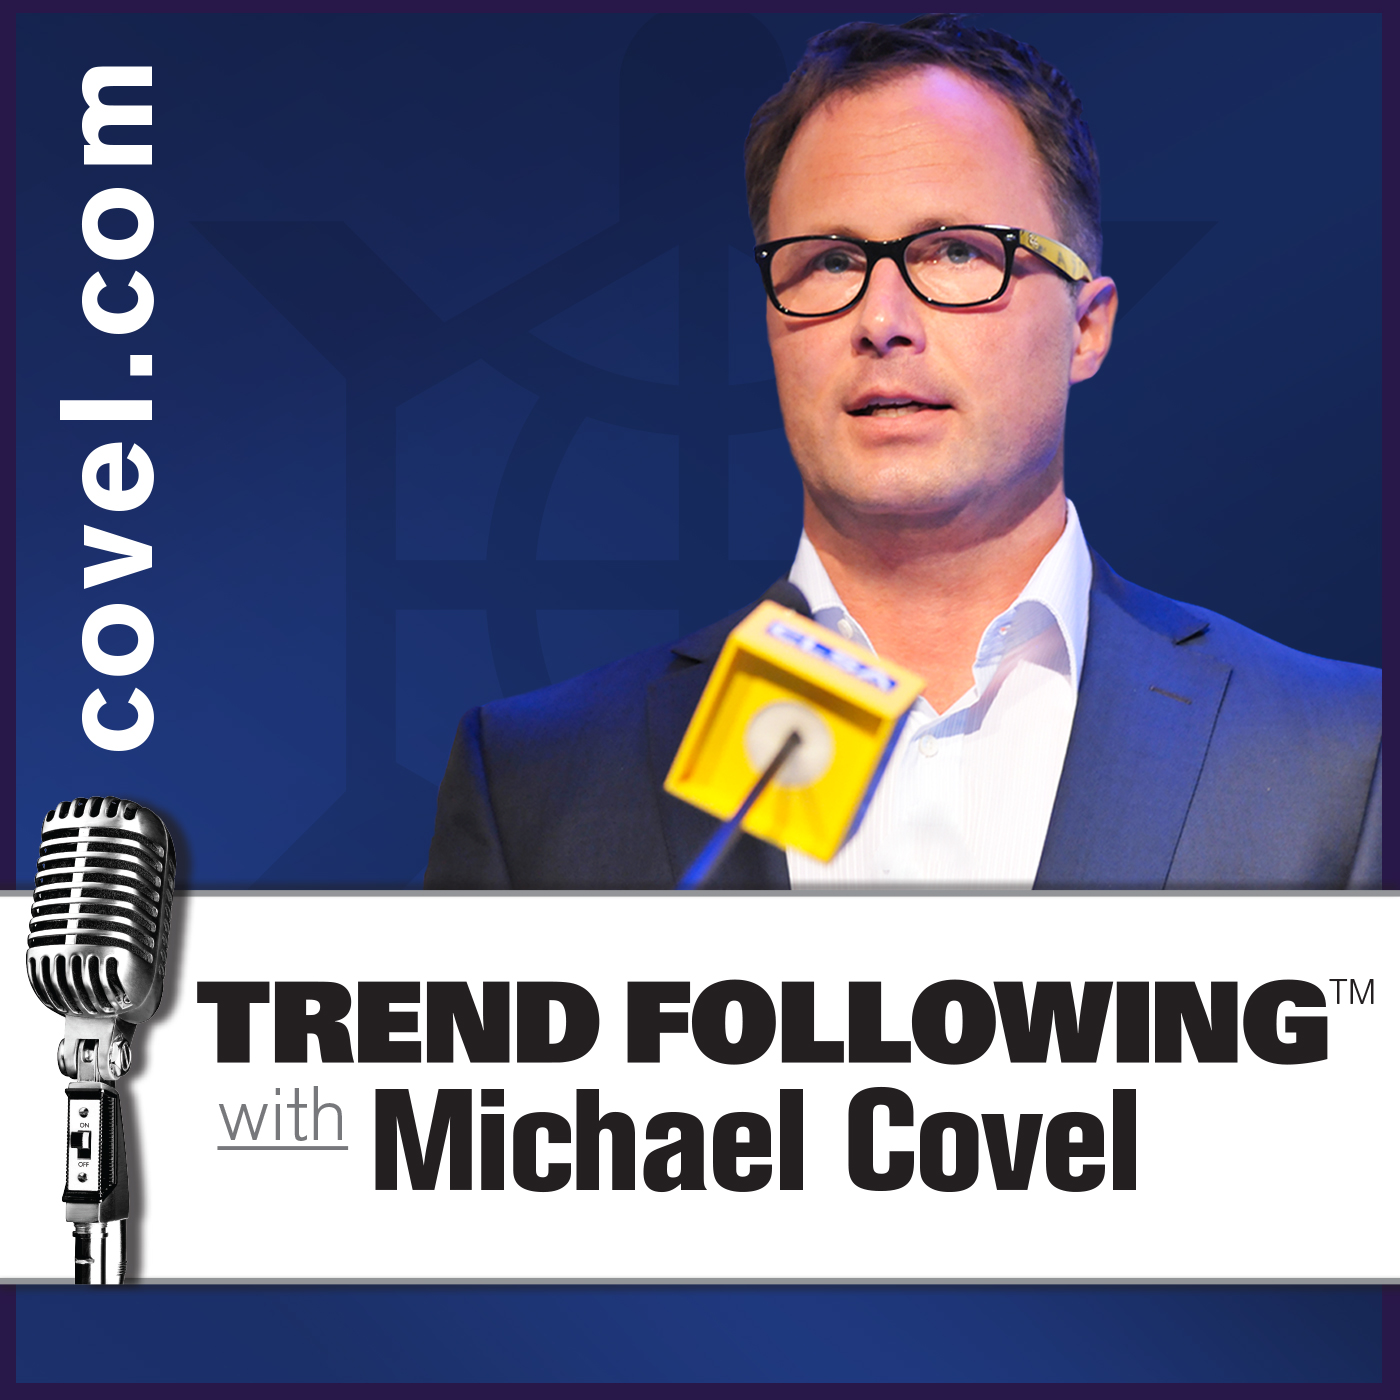 Ep. 505: Daniel Crosby Interview with Michael Covel on Trend Following Radio